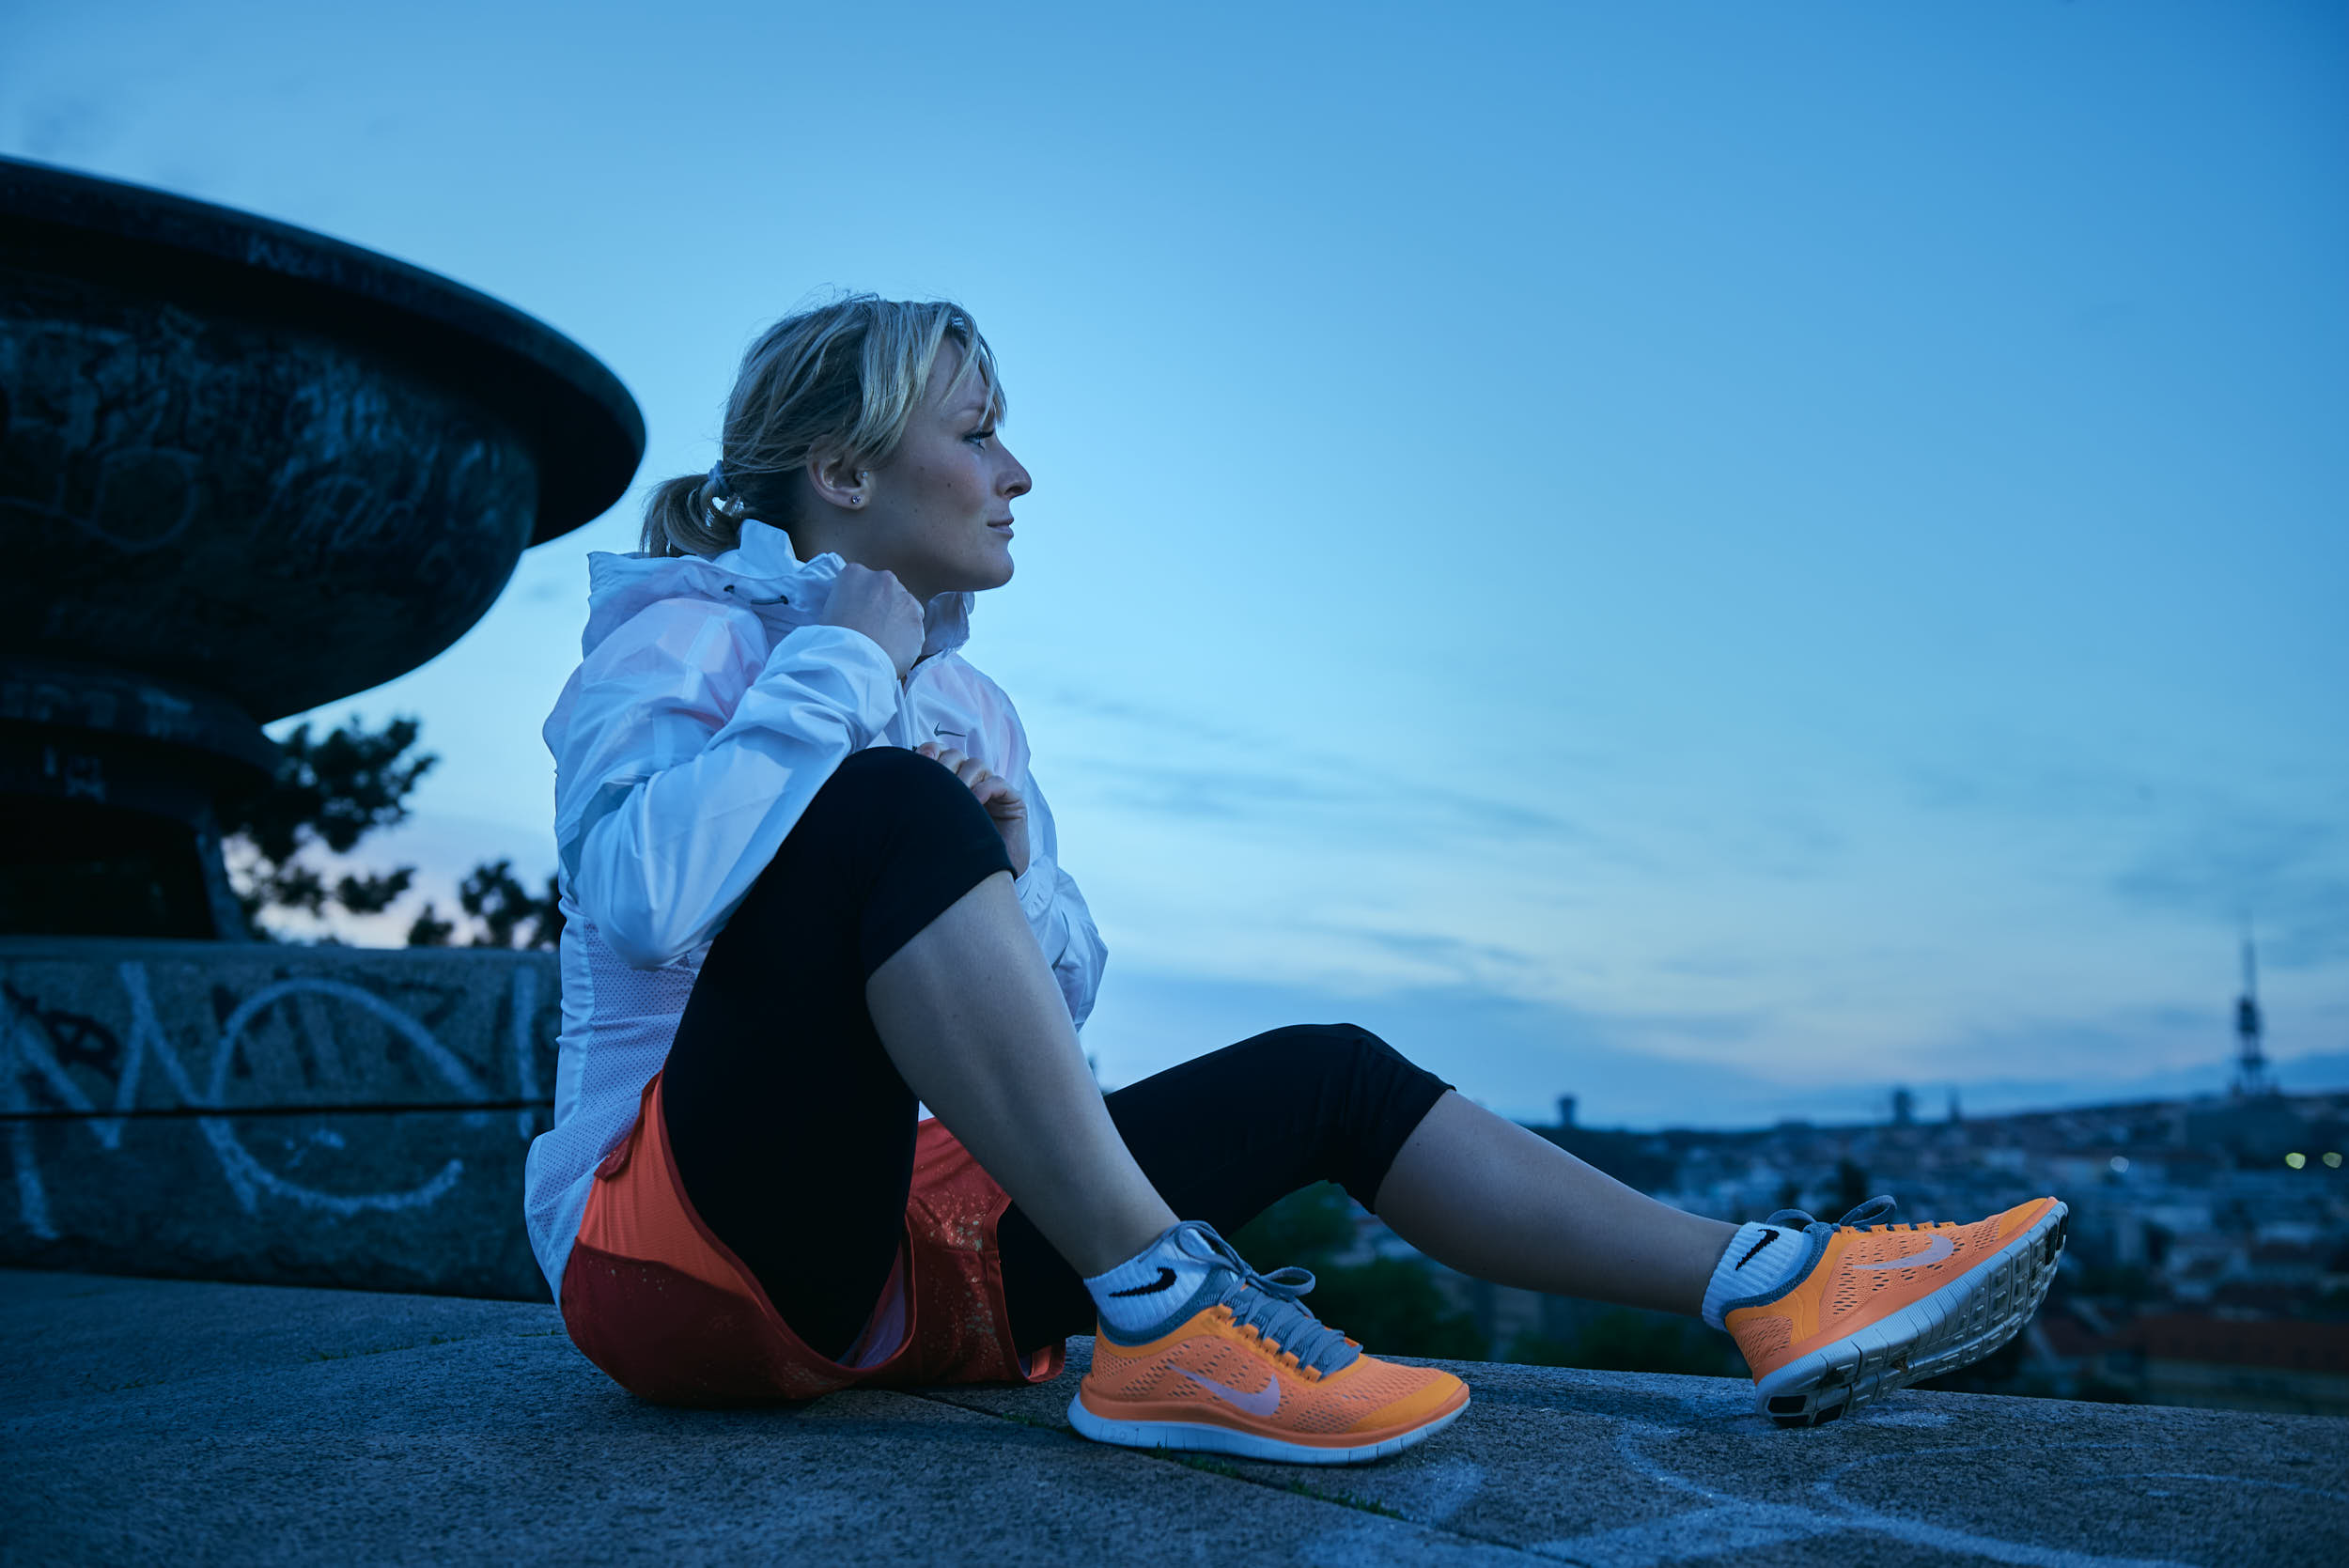 Active lifestyle photography: girl in running apparel getting ready for the workout at dawn.